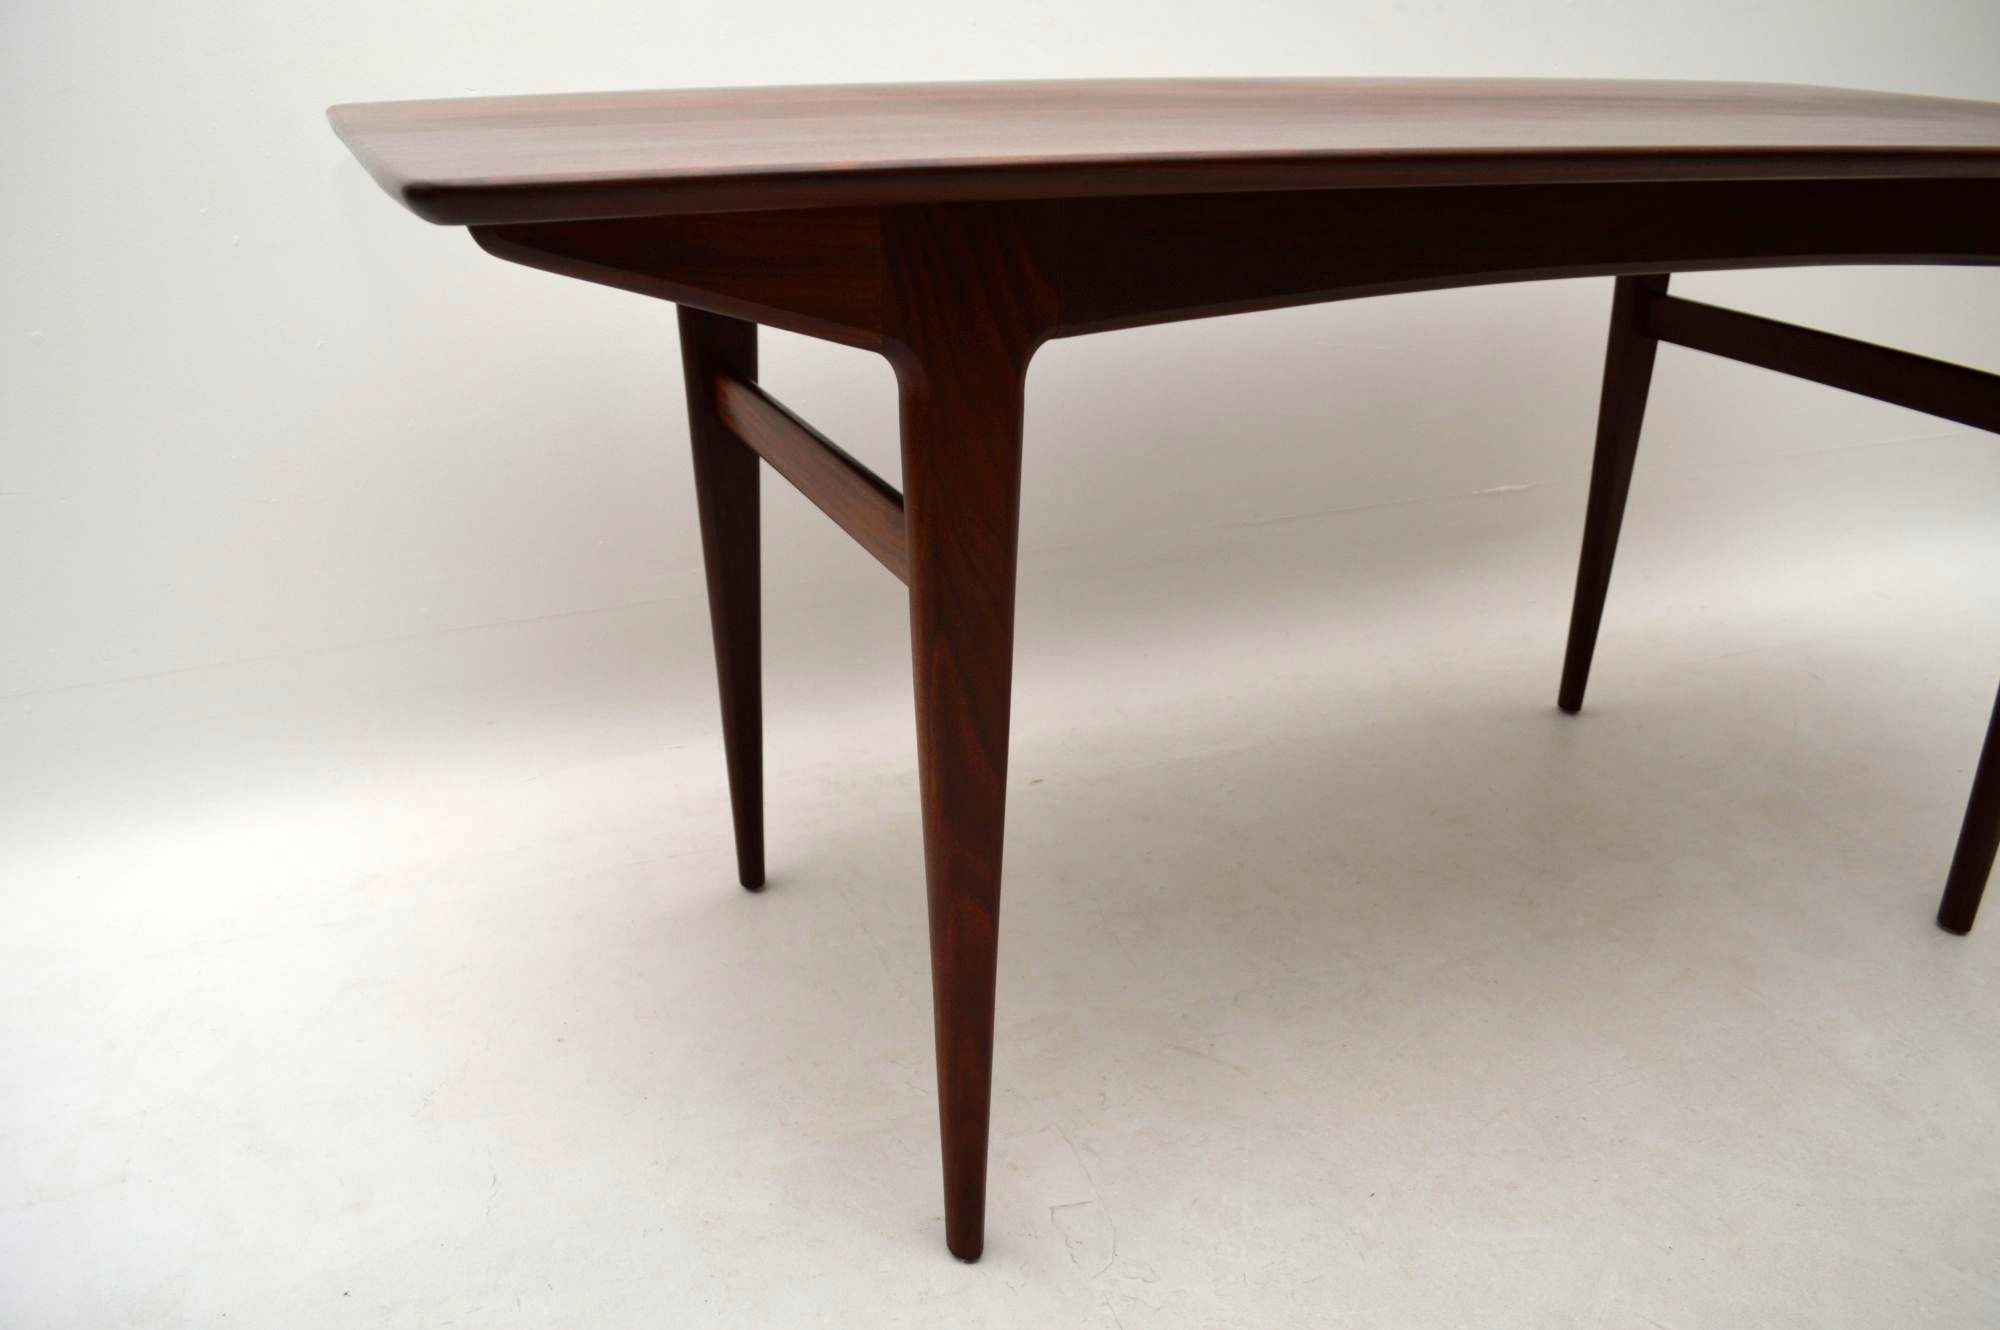 Retro Afromosia Dining Table & Chairs by John Herbert for Younger